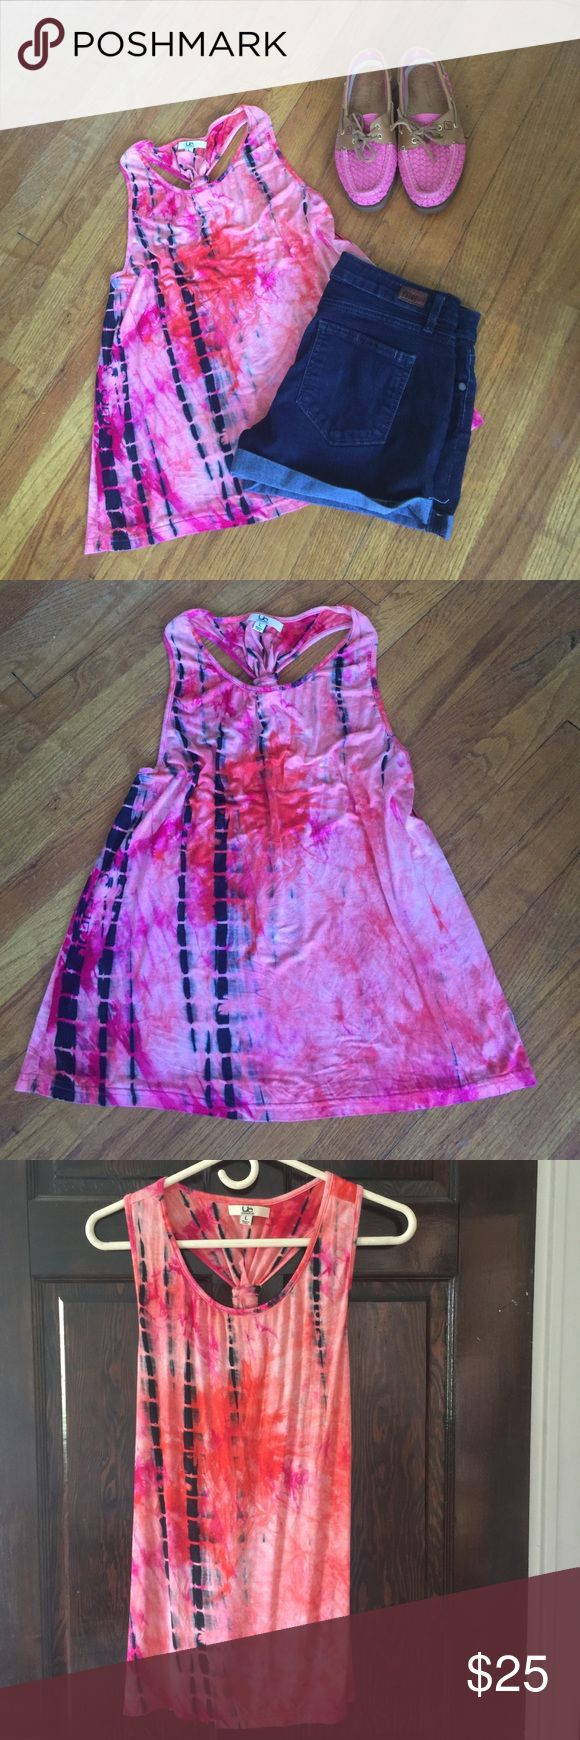 """Tie Dye Tank ☀️ Super cute and soft Tank Top - fun pink and navy tie dye design - cute knotted racer back - bust laying flat approx 16"""" - length approx 23"""" - soft and stretchy - worn once - size large boutique Tops Tank Tops"""